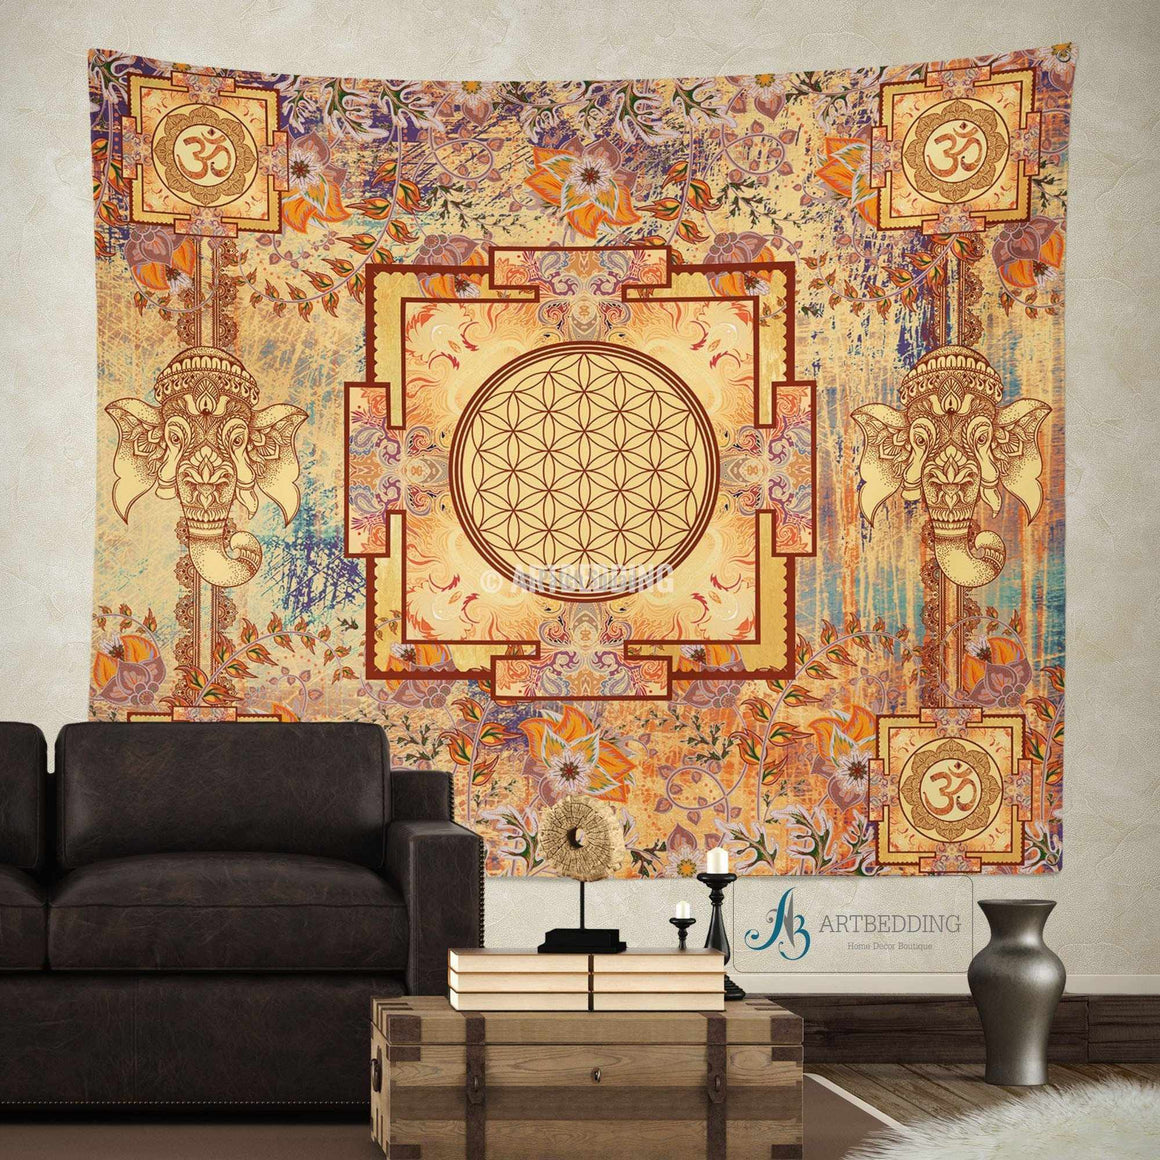 Boho Tapestry, Sacred Yantra wall tapestry, Hippie tapestry wall hanging, Spiritual bohemian decor